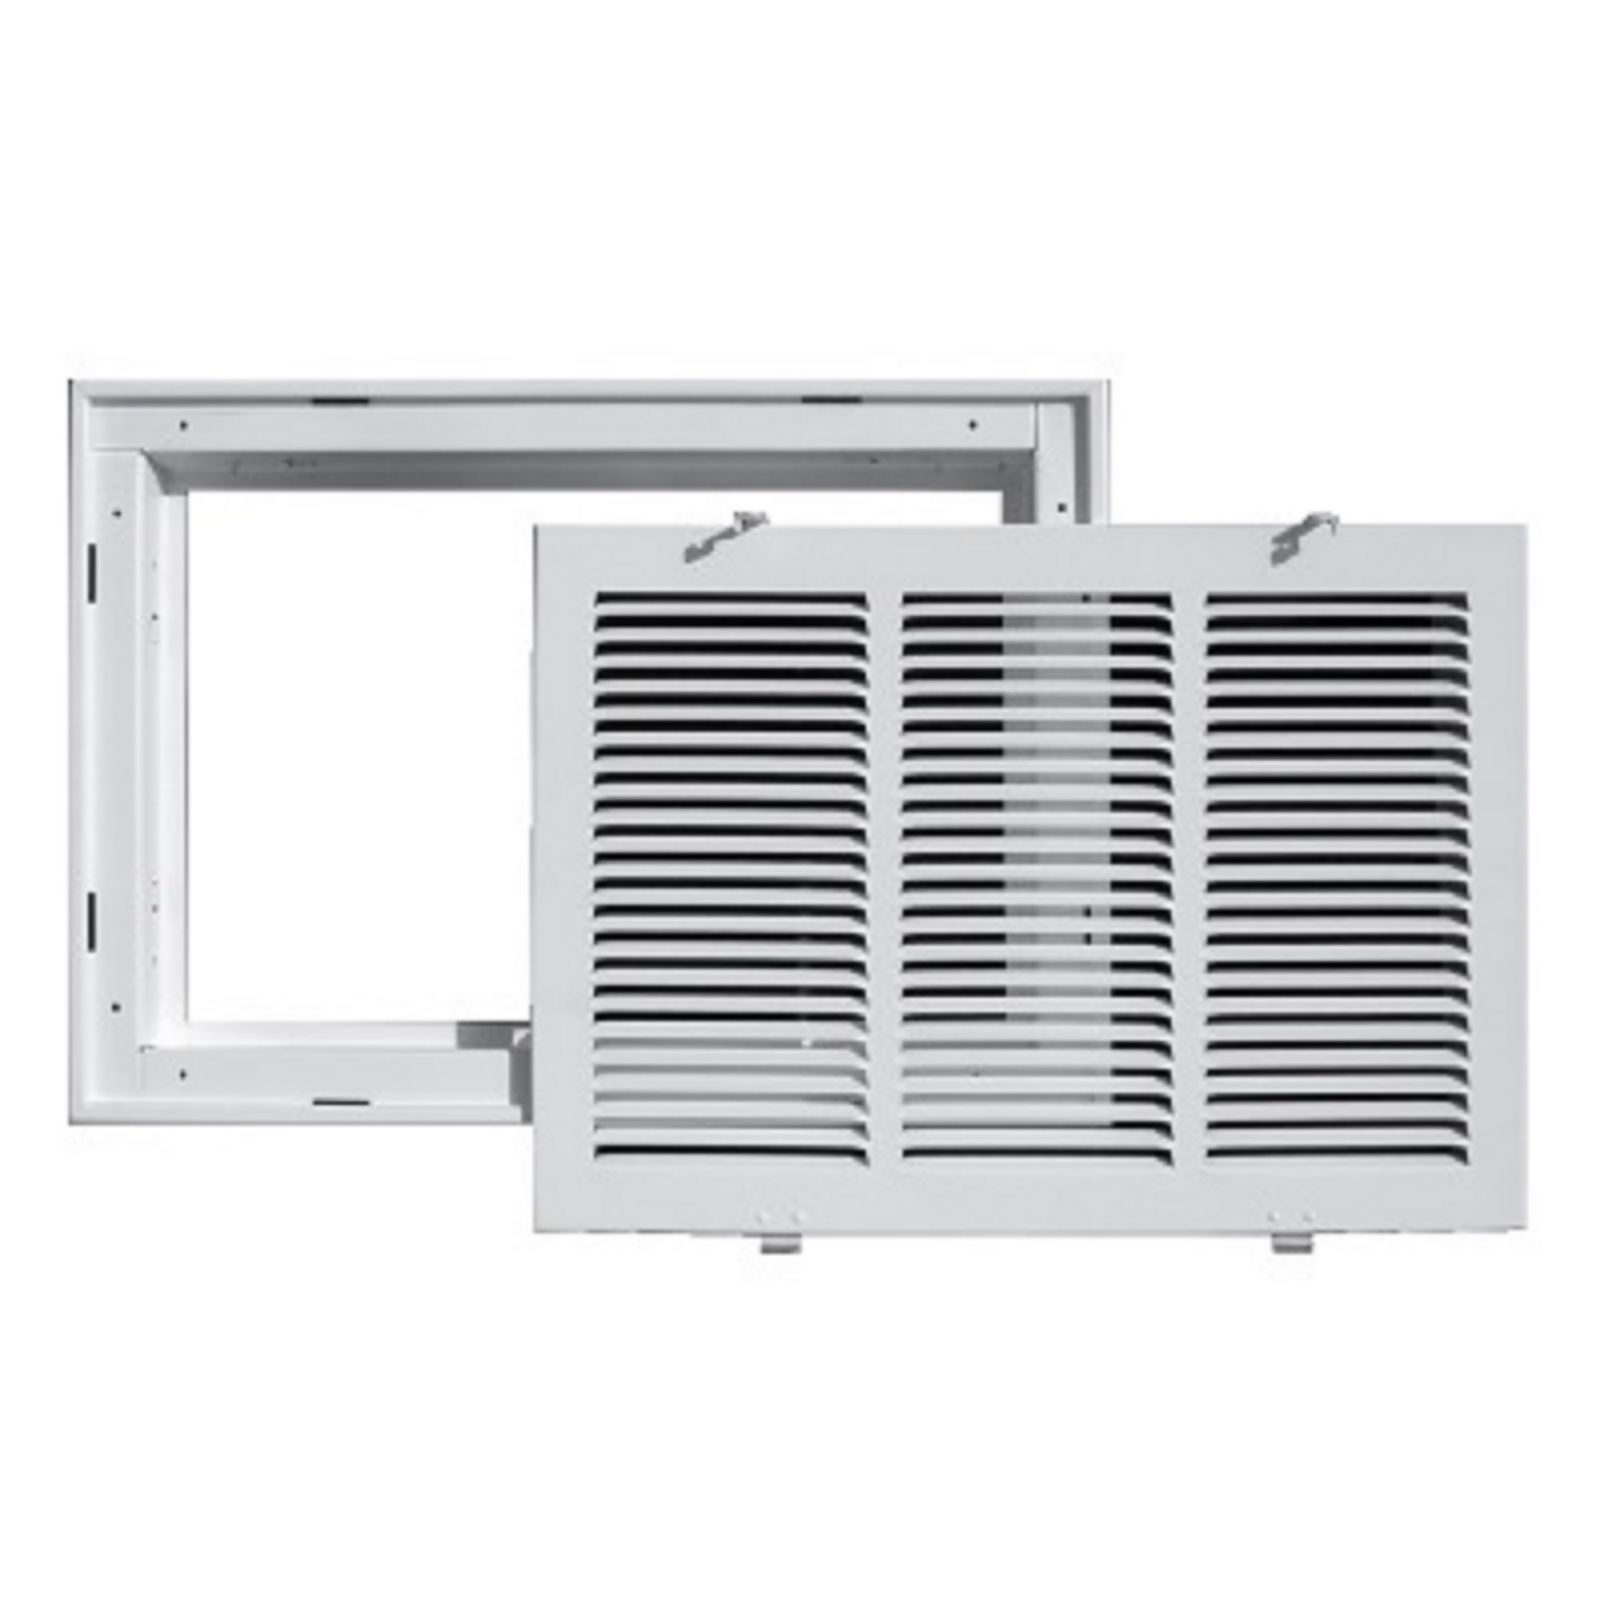 "TRUaire 190RF 30X12 - Steel Return Air Filter Grille With Removable Face, White, 30"" X 12"""